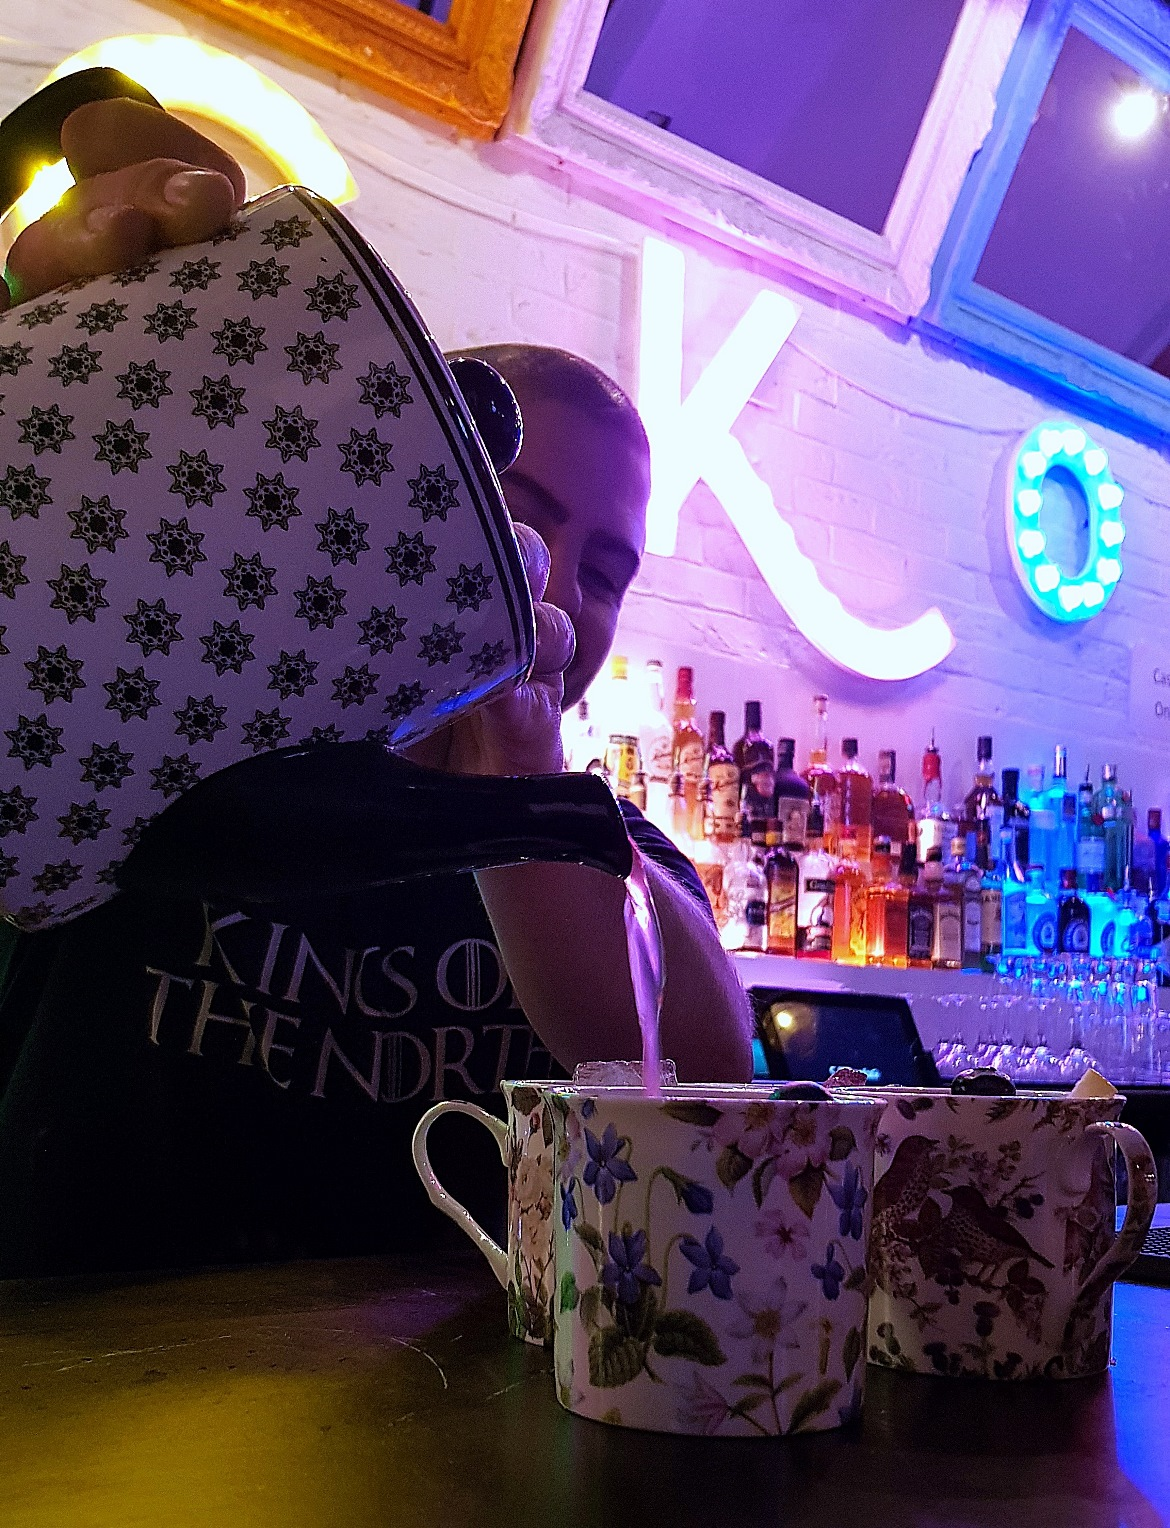 Spiced Berry Tea - Cuckoo, the newest cocktail and pizza bar on Call Lane in Leeds - Bar Review by BeckyBecky Blogs